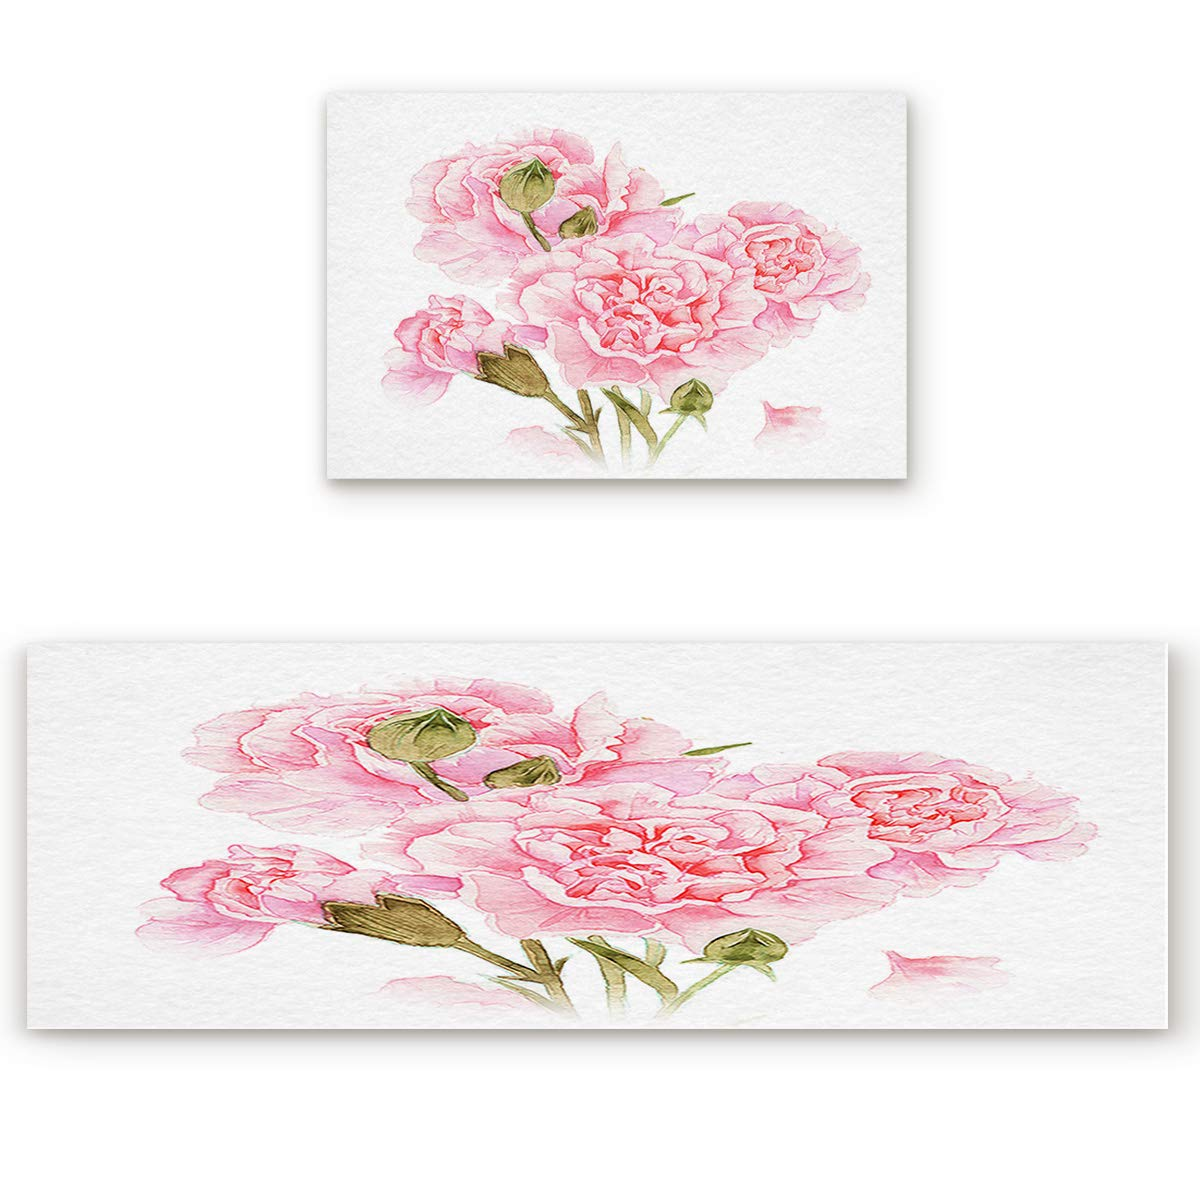 23.6\ SODIKA 2 Pieces Kitchen Rug Set,Non-Skid Slip Washable Doormat Floor Runner Bathroom Area Rug Carpet,Happy Mother's Day Pink Floral Carnation (23.6x35.4in+23.6x70.9 inches)